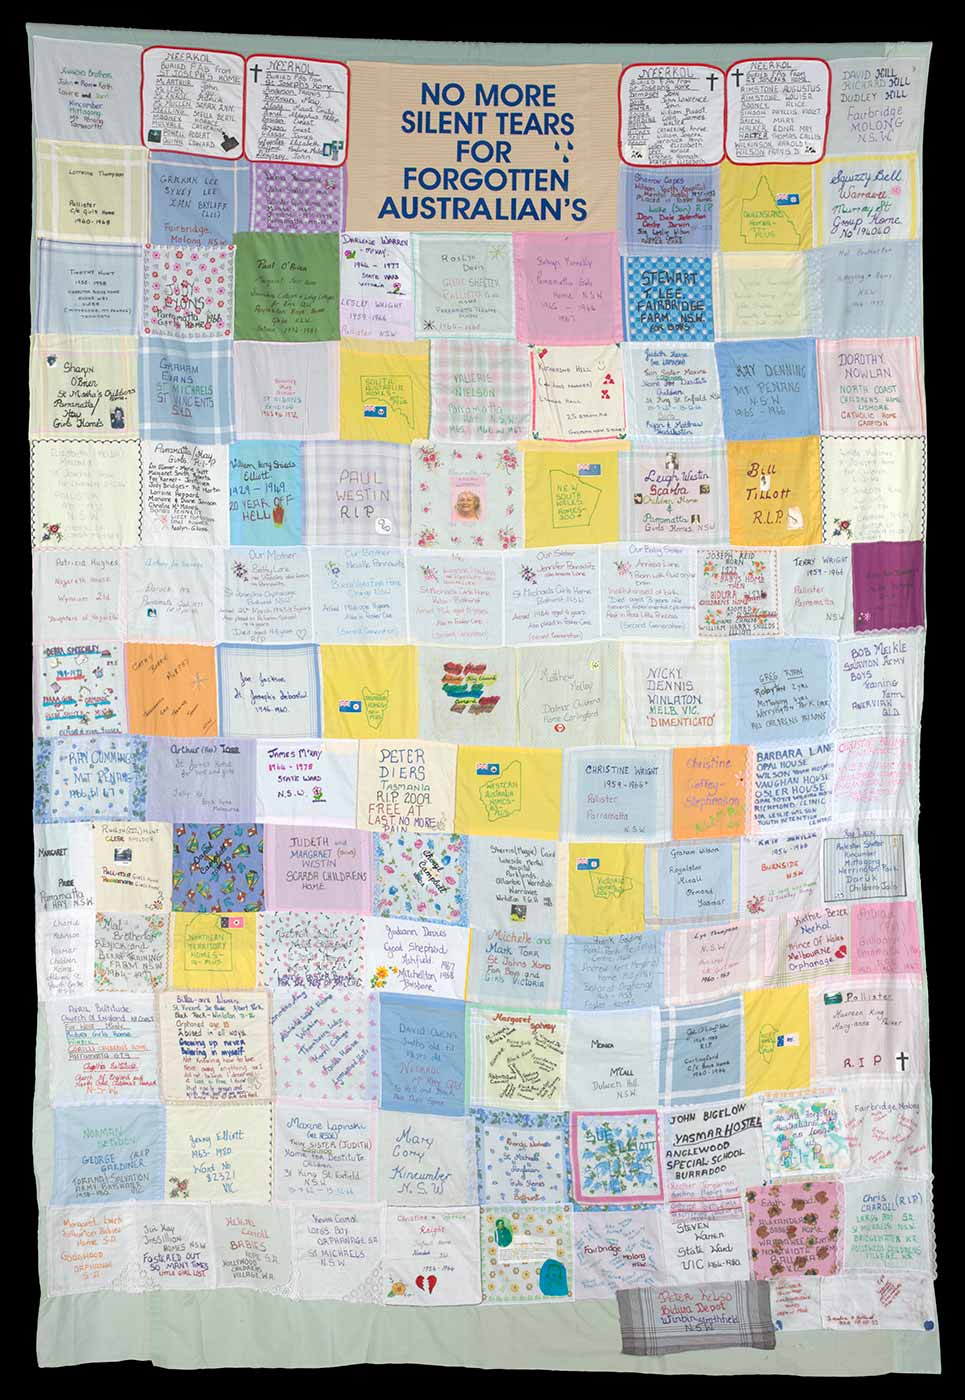 A colour photograph of a patchwork quilt made up of various coloured handkerchieves stitched together. The individual handkerchiefs have personal messages written and embroidered on them.